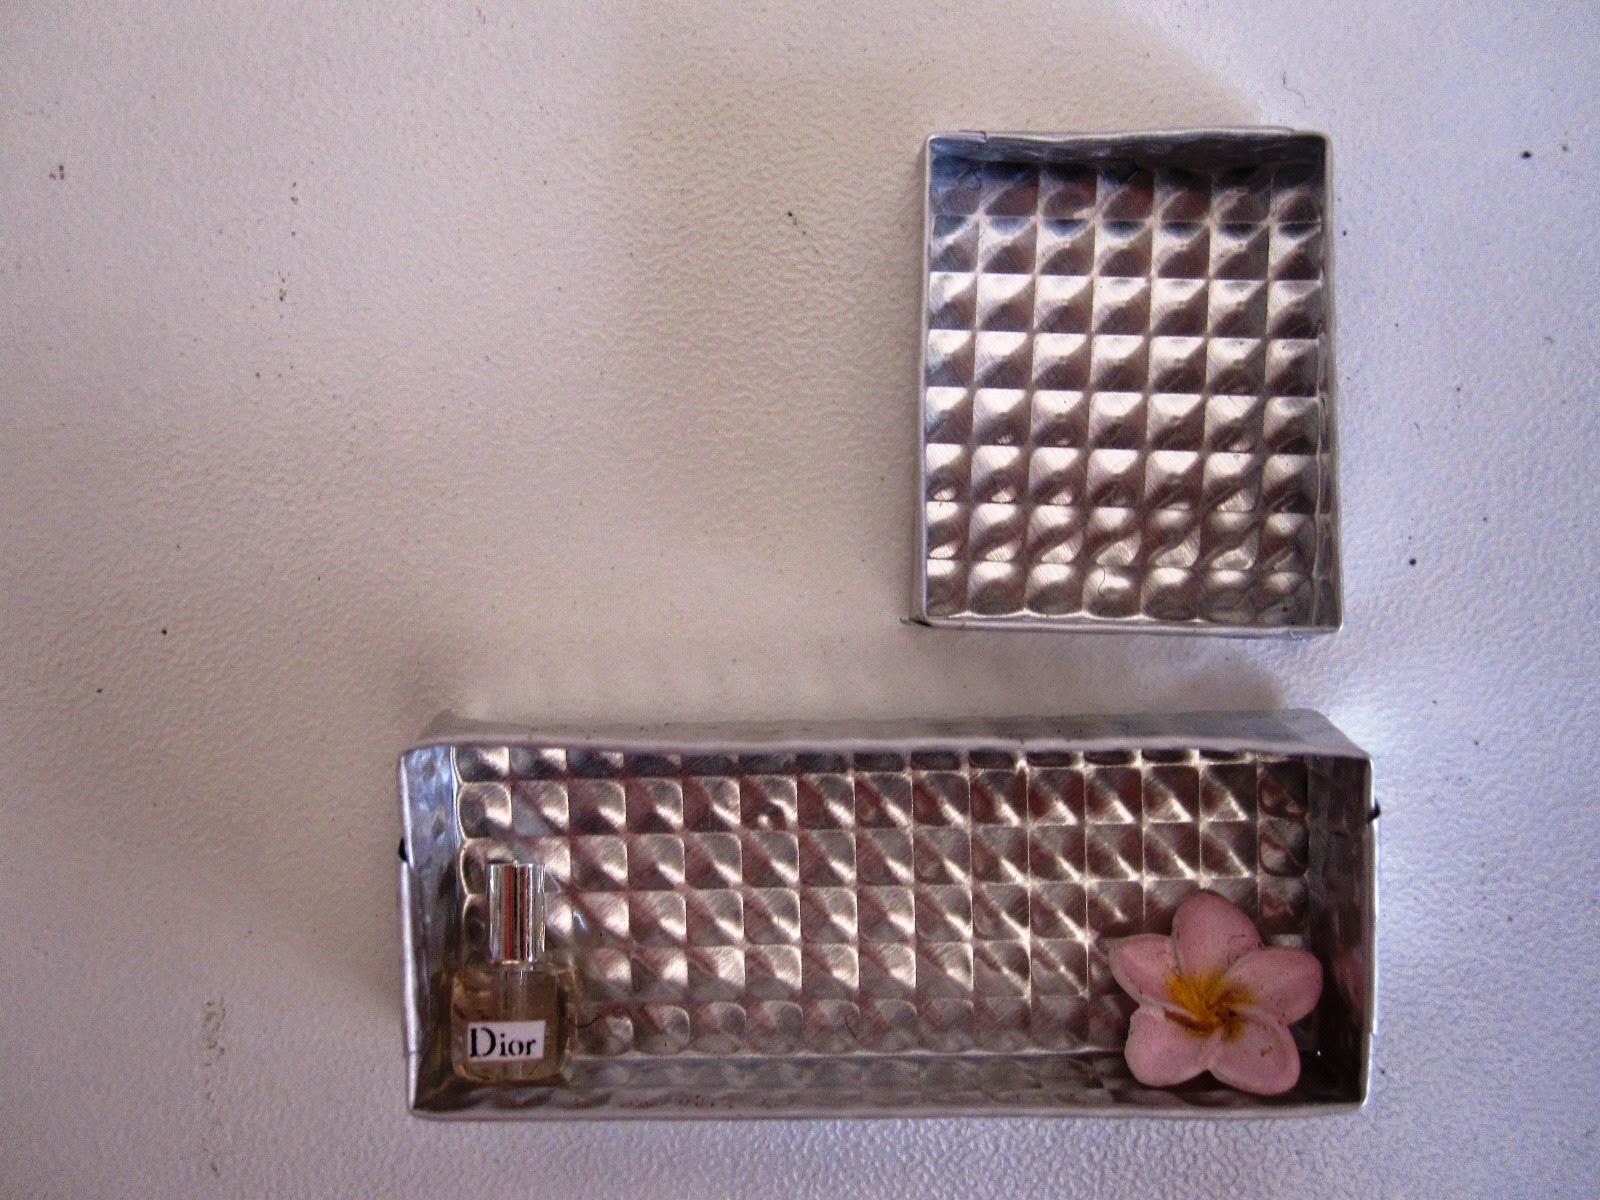 Two silver-coloured embossed metal dolls house wall boxes, one rectangular and one square, with a perfume bottle and frangipani in the lower one.